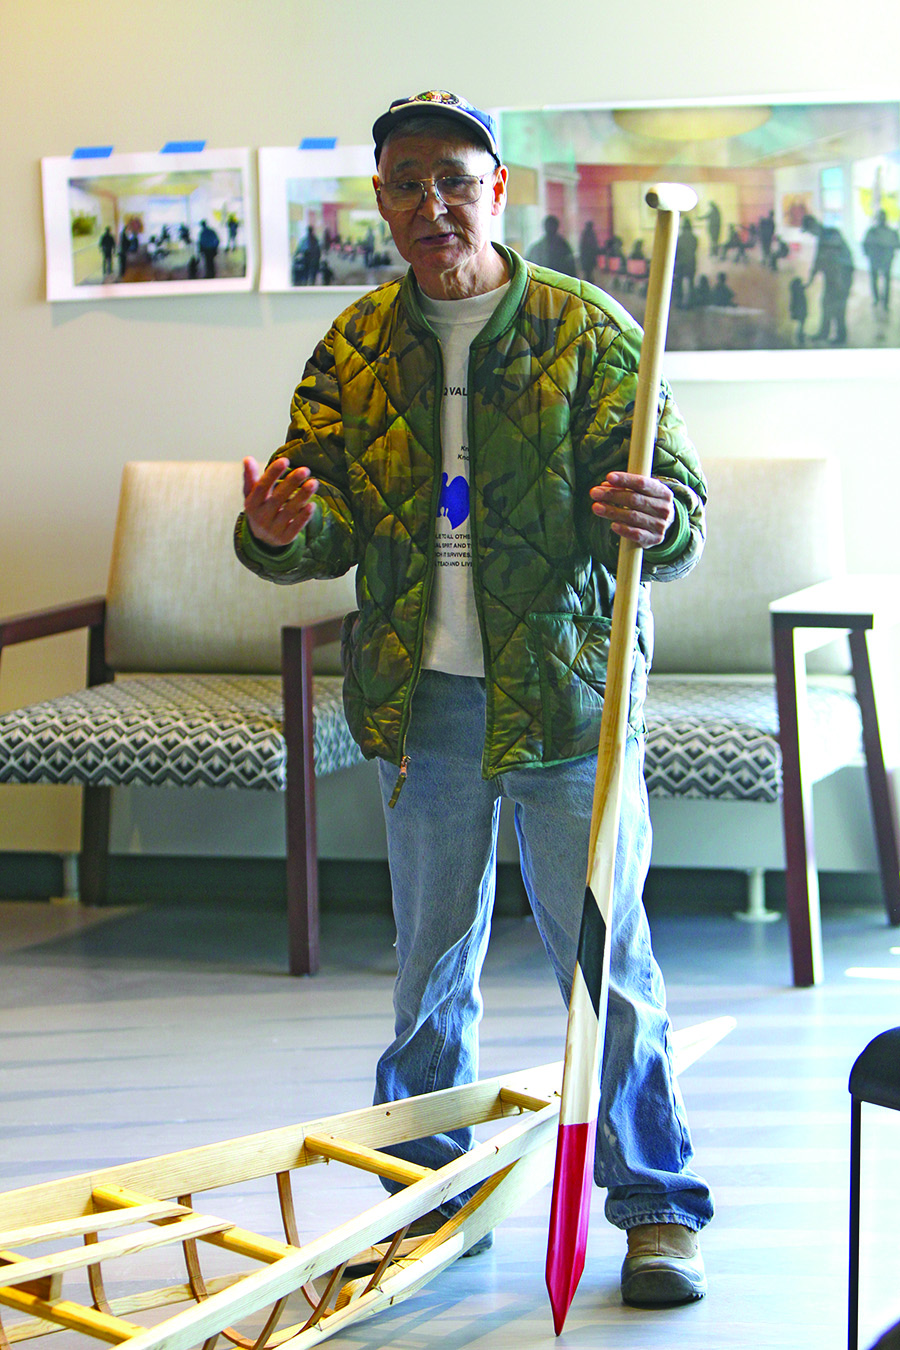 Vince Pikonganna of Nome/King Island talks about the King Island style paddle he holds in his hand.